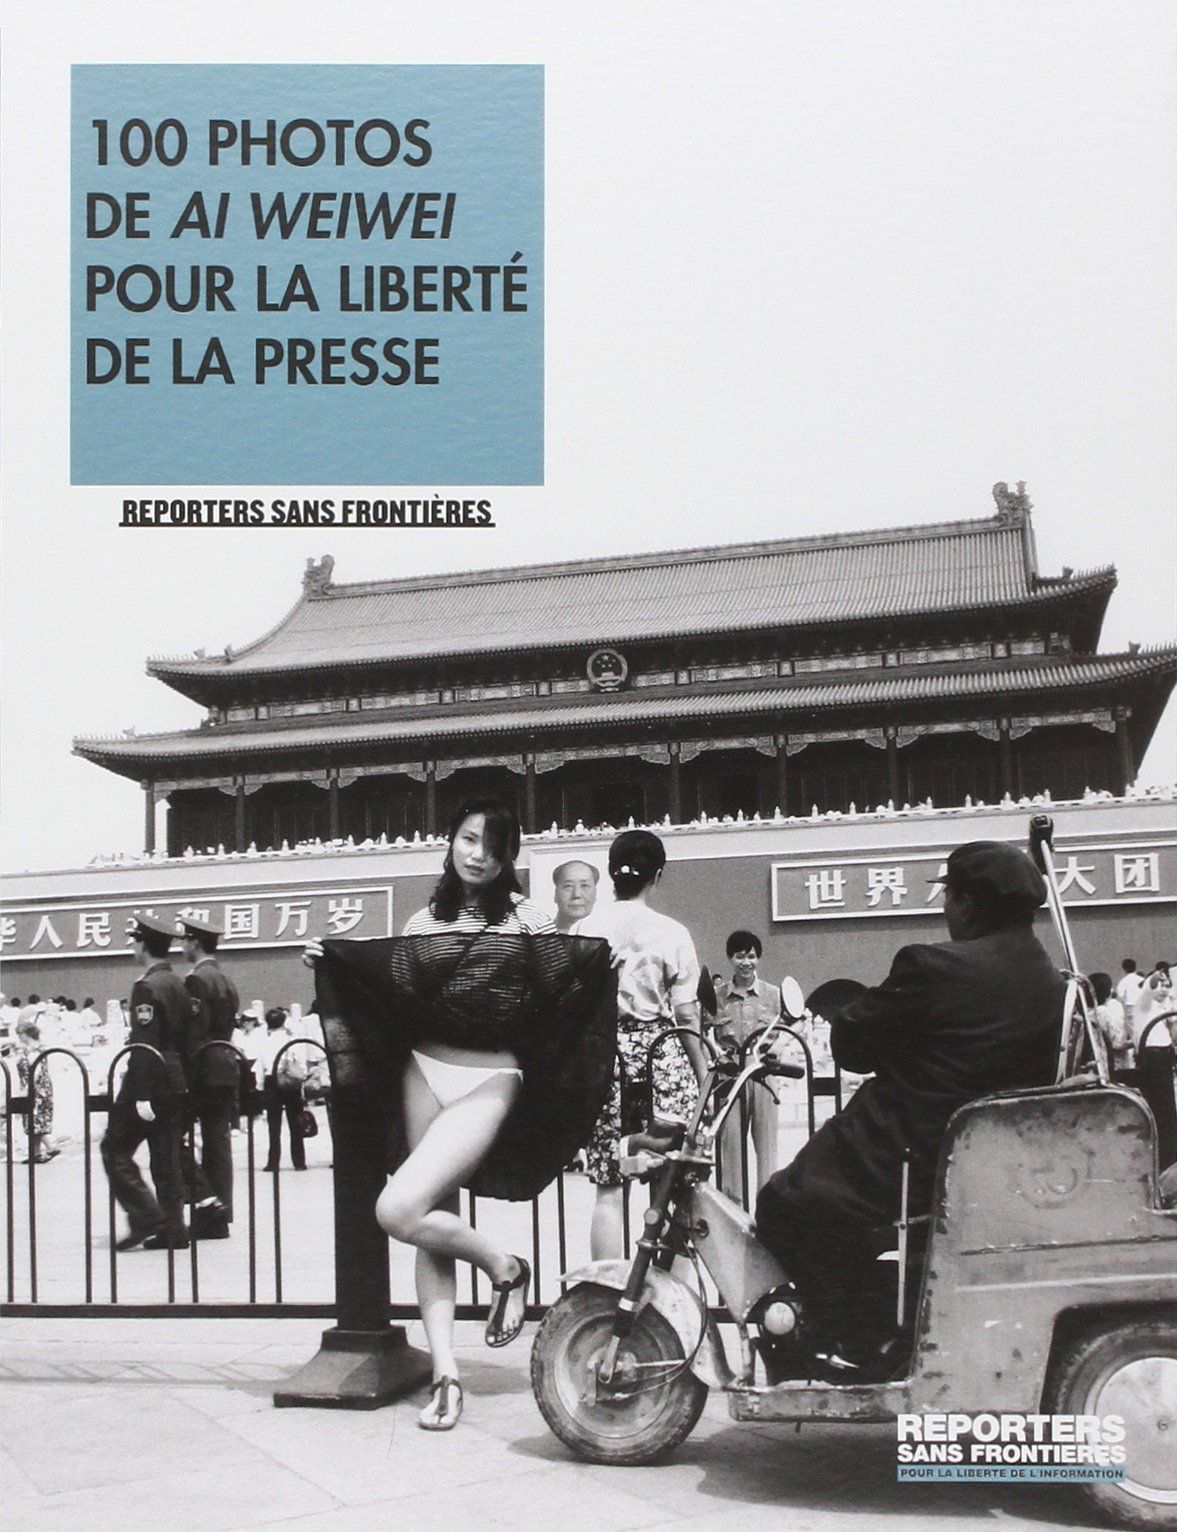 100 photos de Ai Weiwei pour la liberté de la presse: Amazon.co.uk:  Reporters sans frontières: 9782362200205: Books